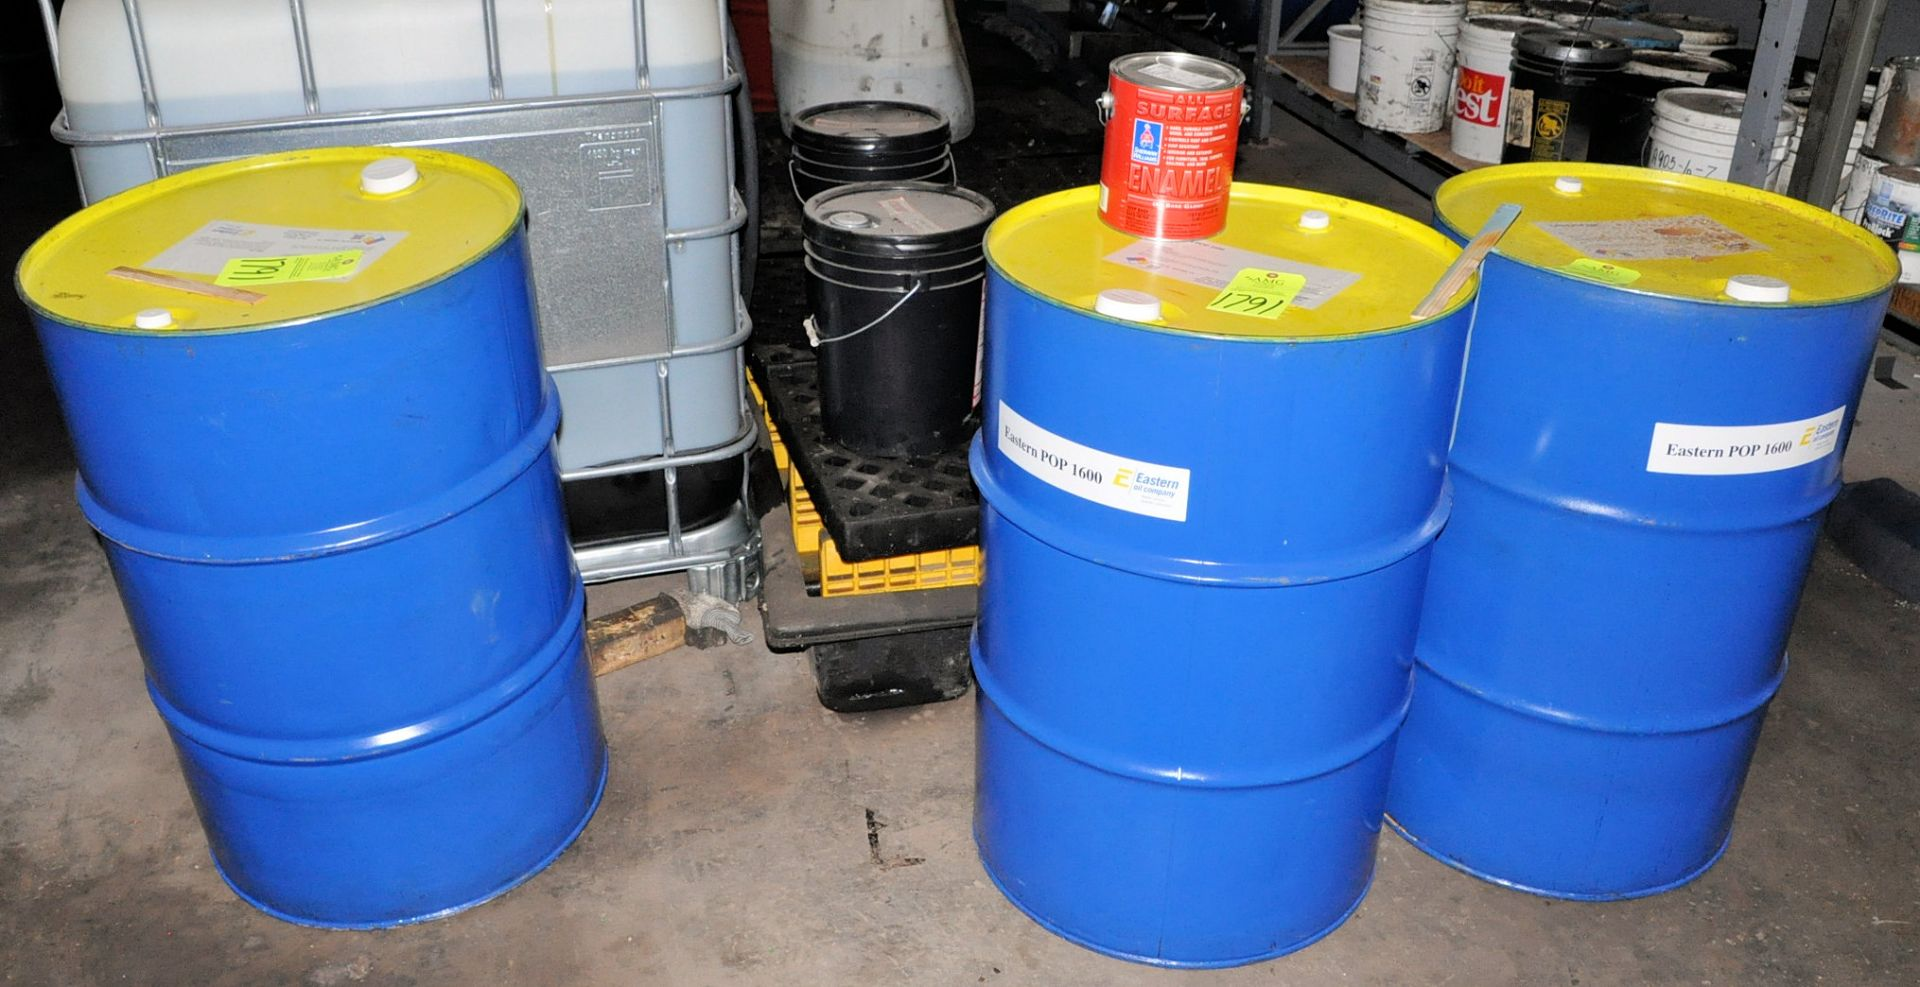 Lot-(3) 55-Gallon Drums of Eastern POP 1600 Paraffinic Process Oil, (Oils Storage Building), (Yellow